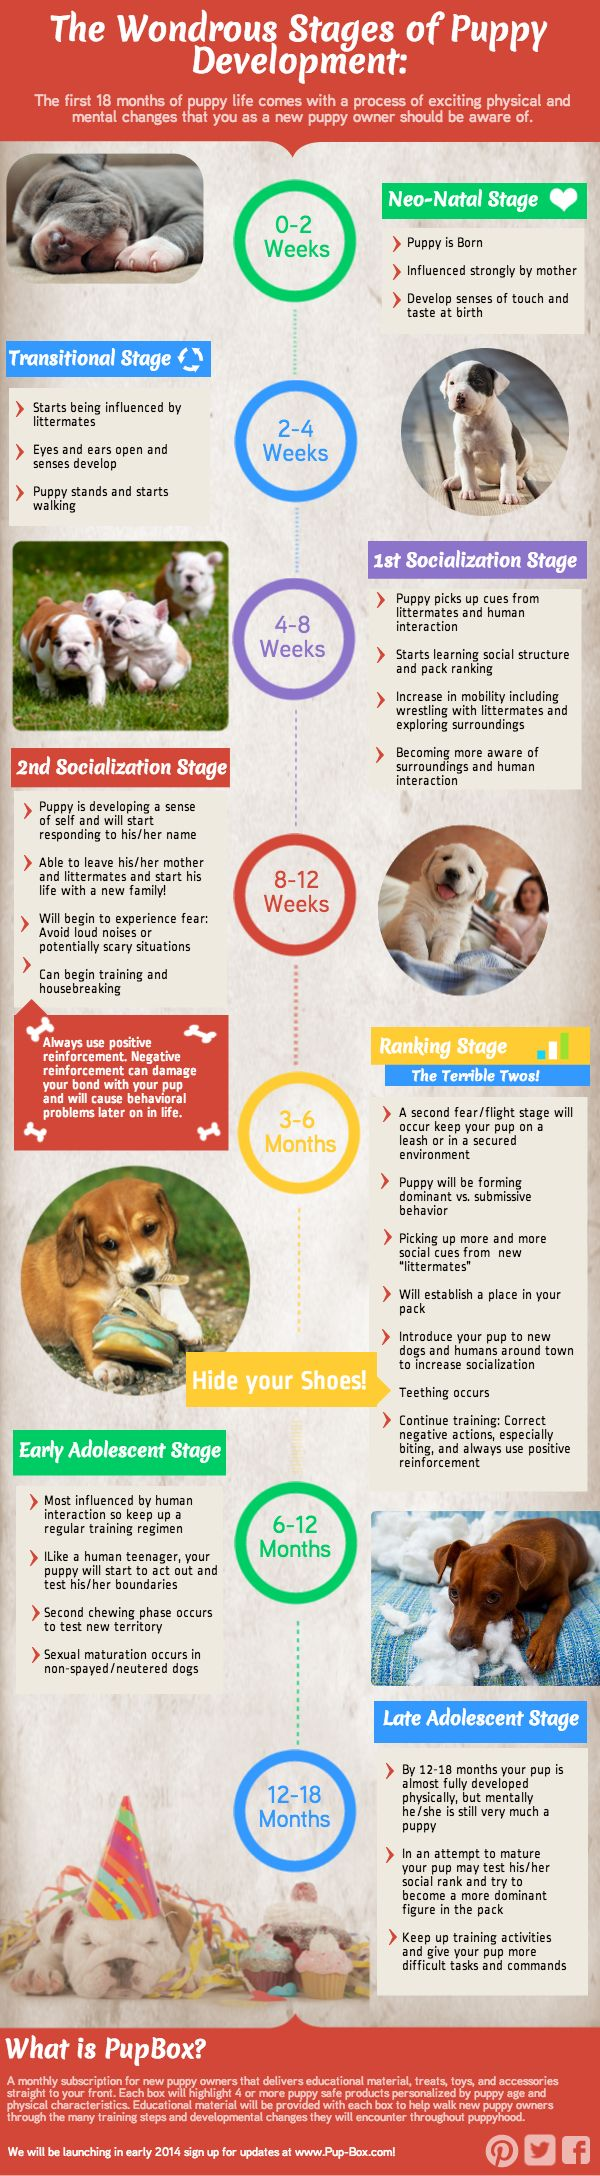 The Wondrous Stages Of Puppy Development   #Infographic #Puppy